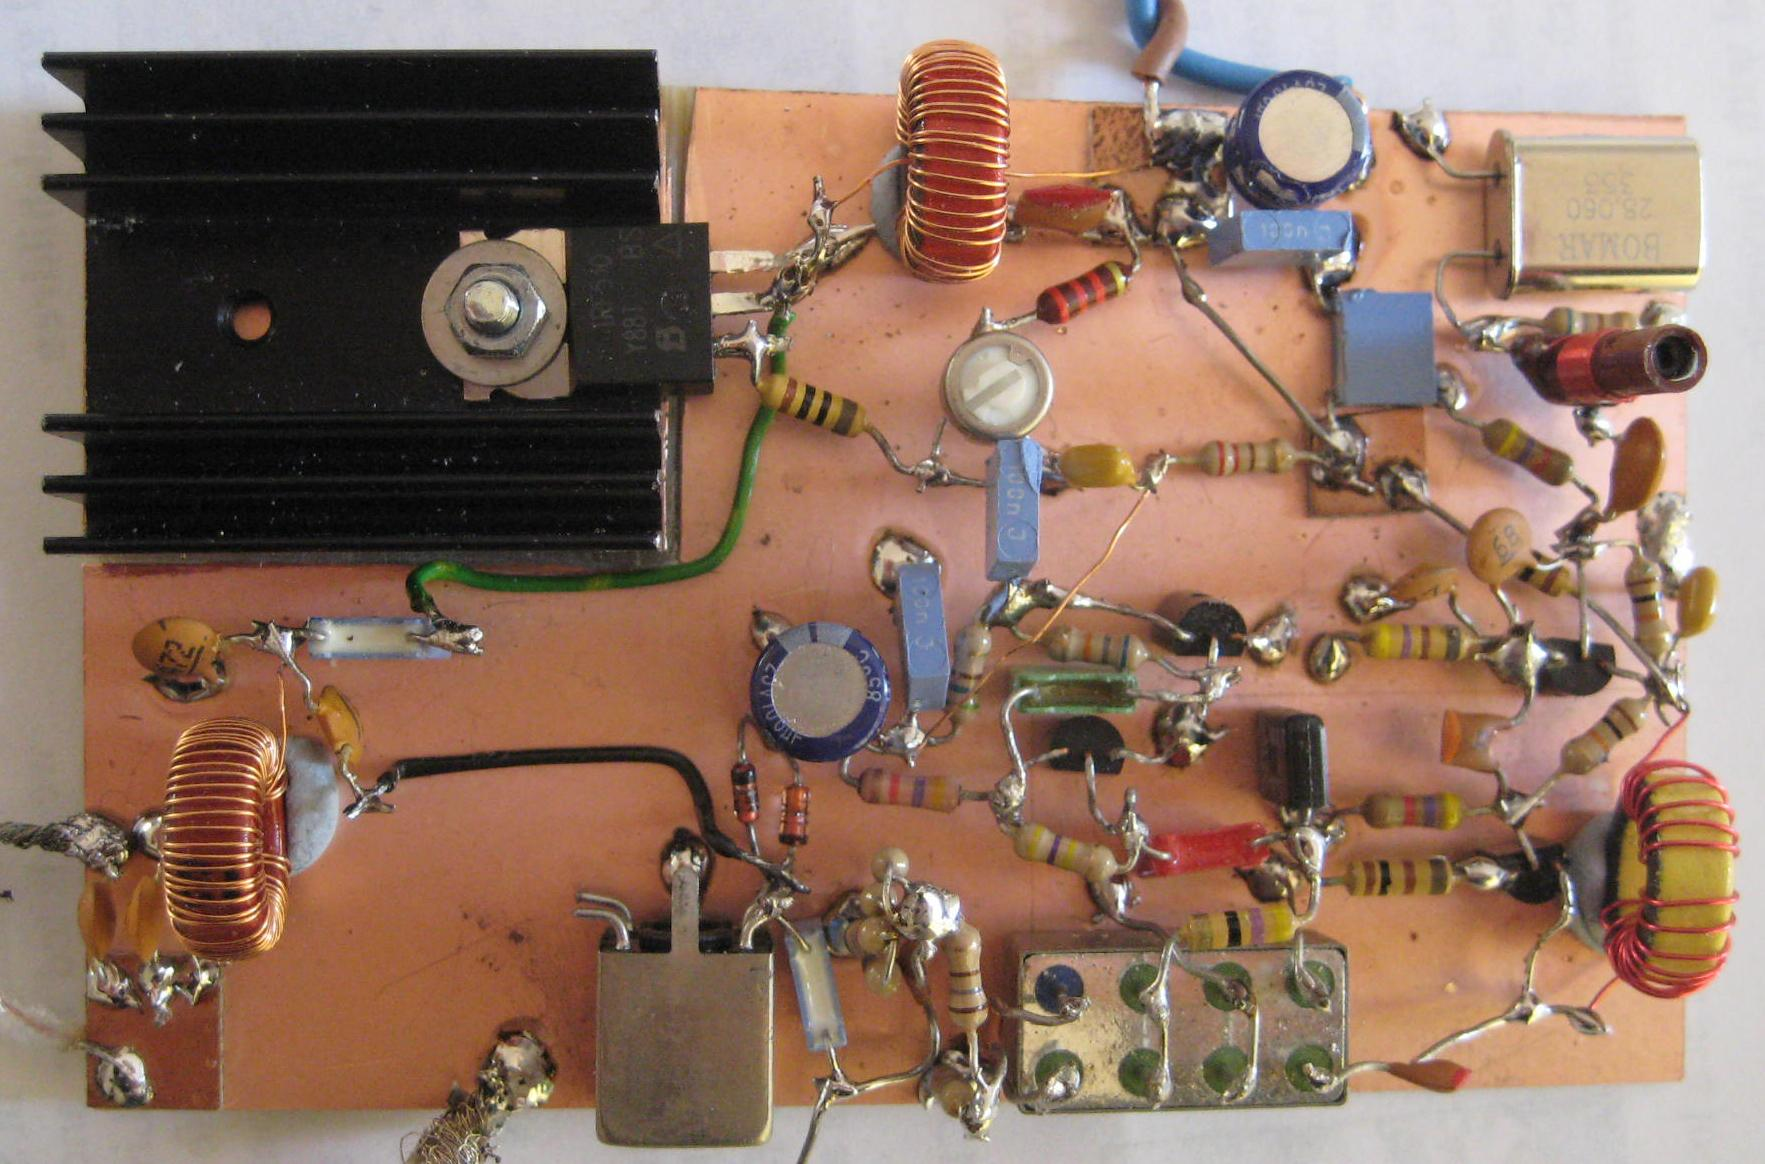 500KHz Transverter board